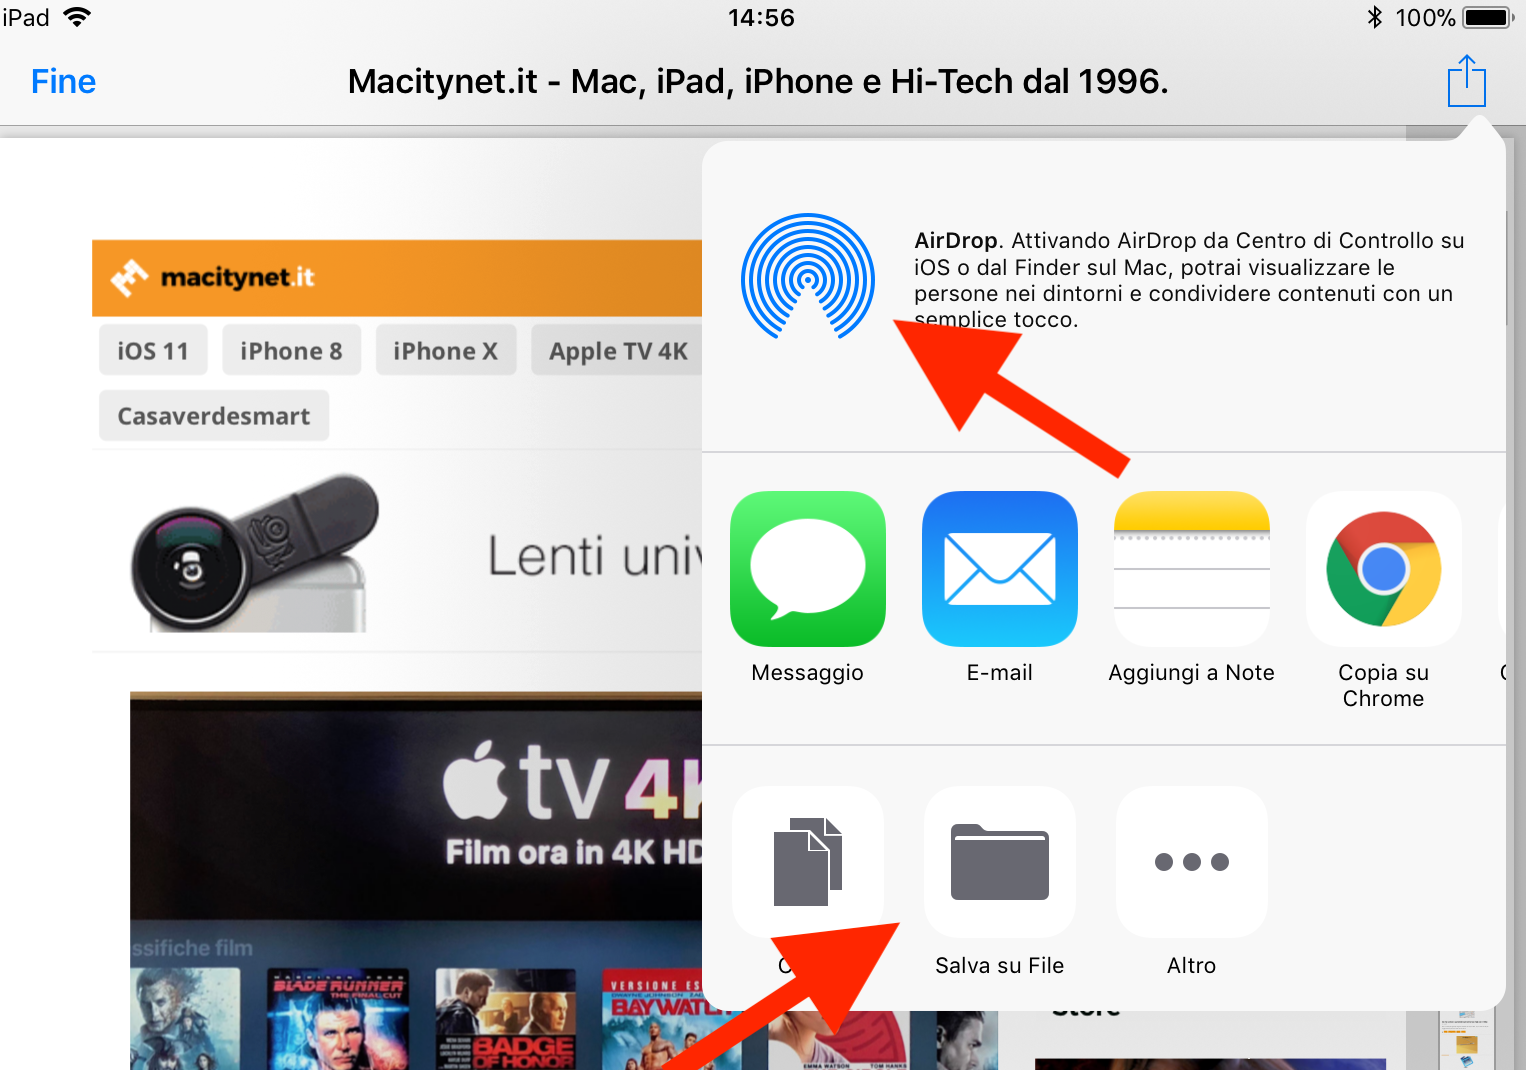 salvare un PDF da iPhone